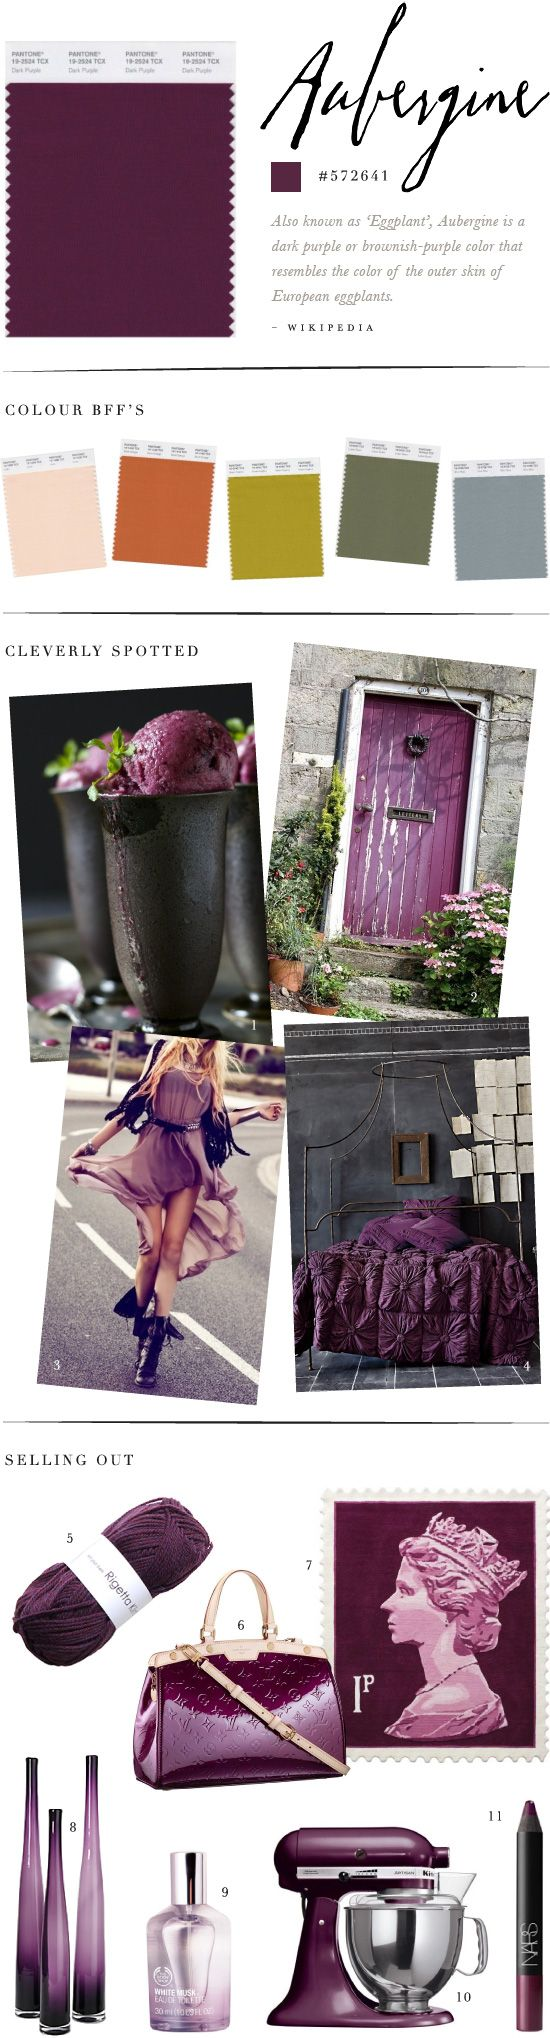 Aubergine!  I LOVE this with the charcoal grey...my bedroom colors eventually!  <3